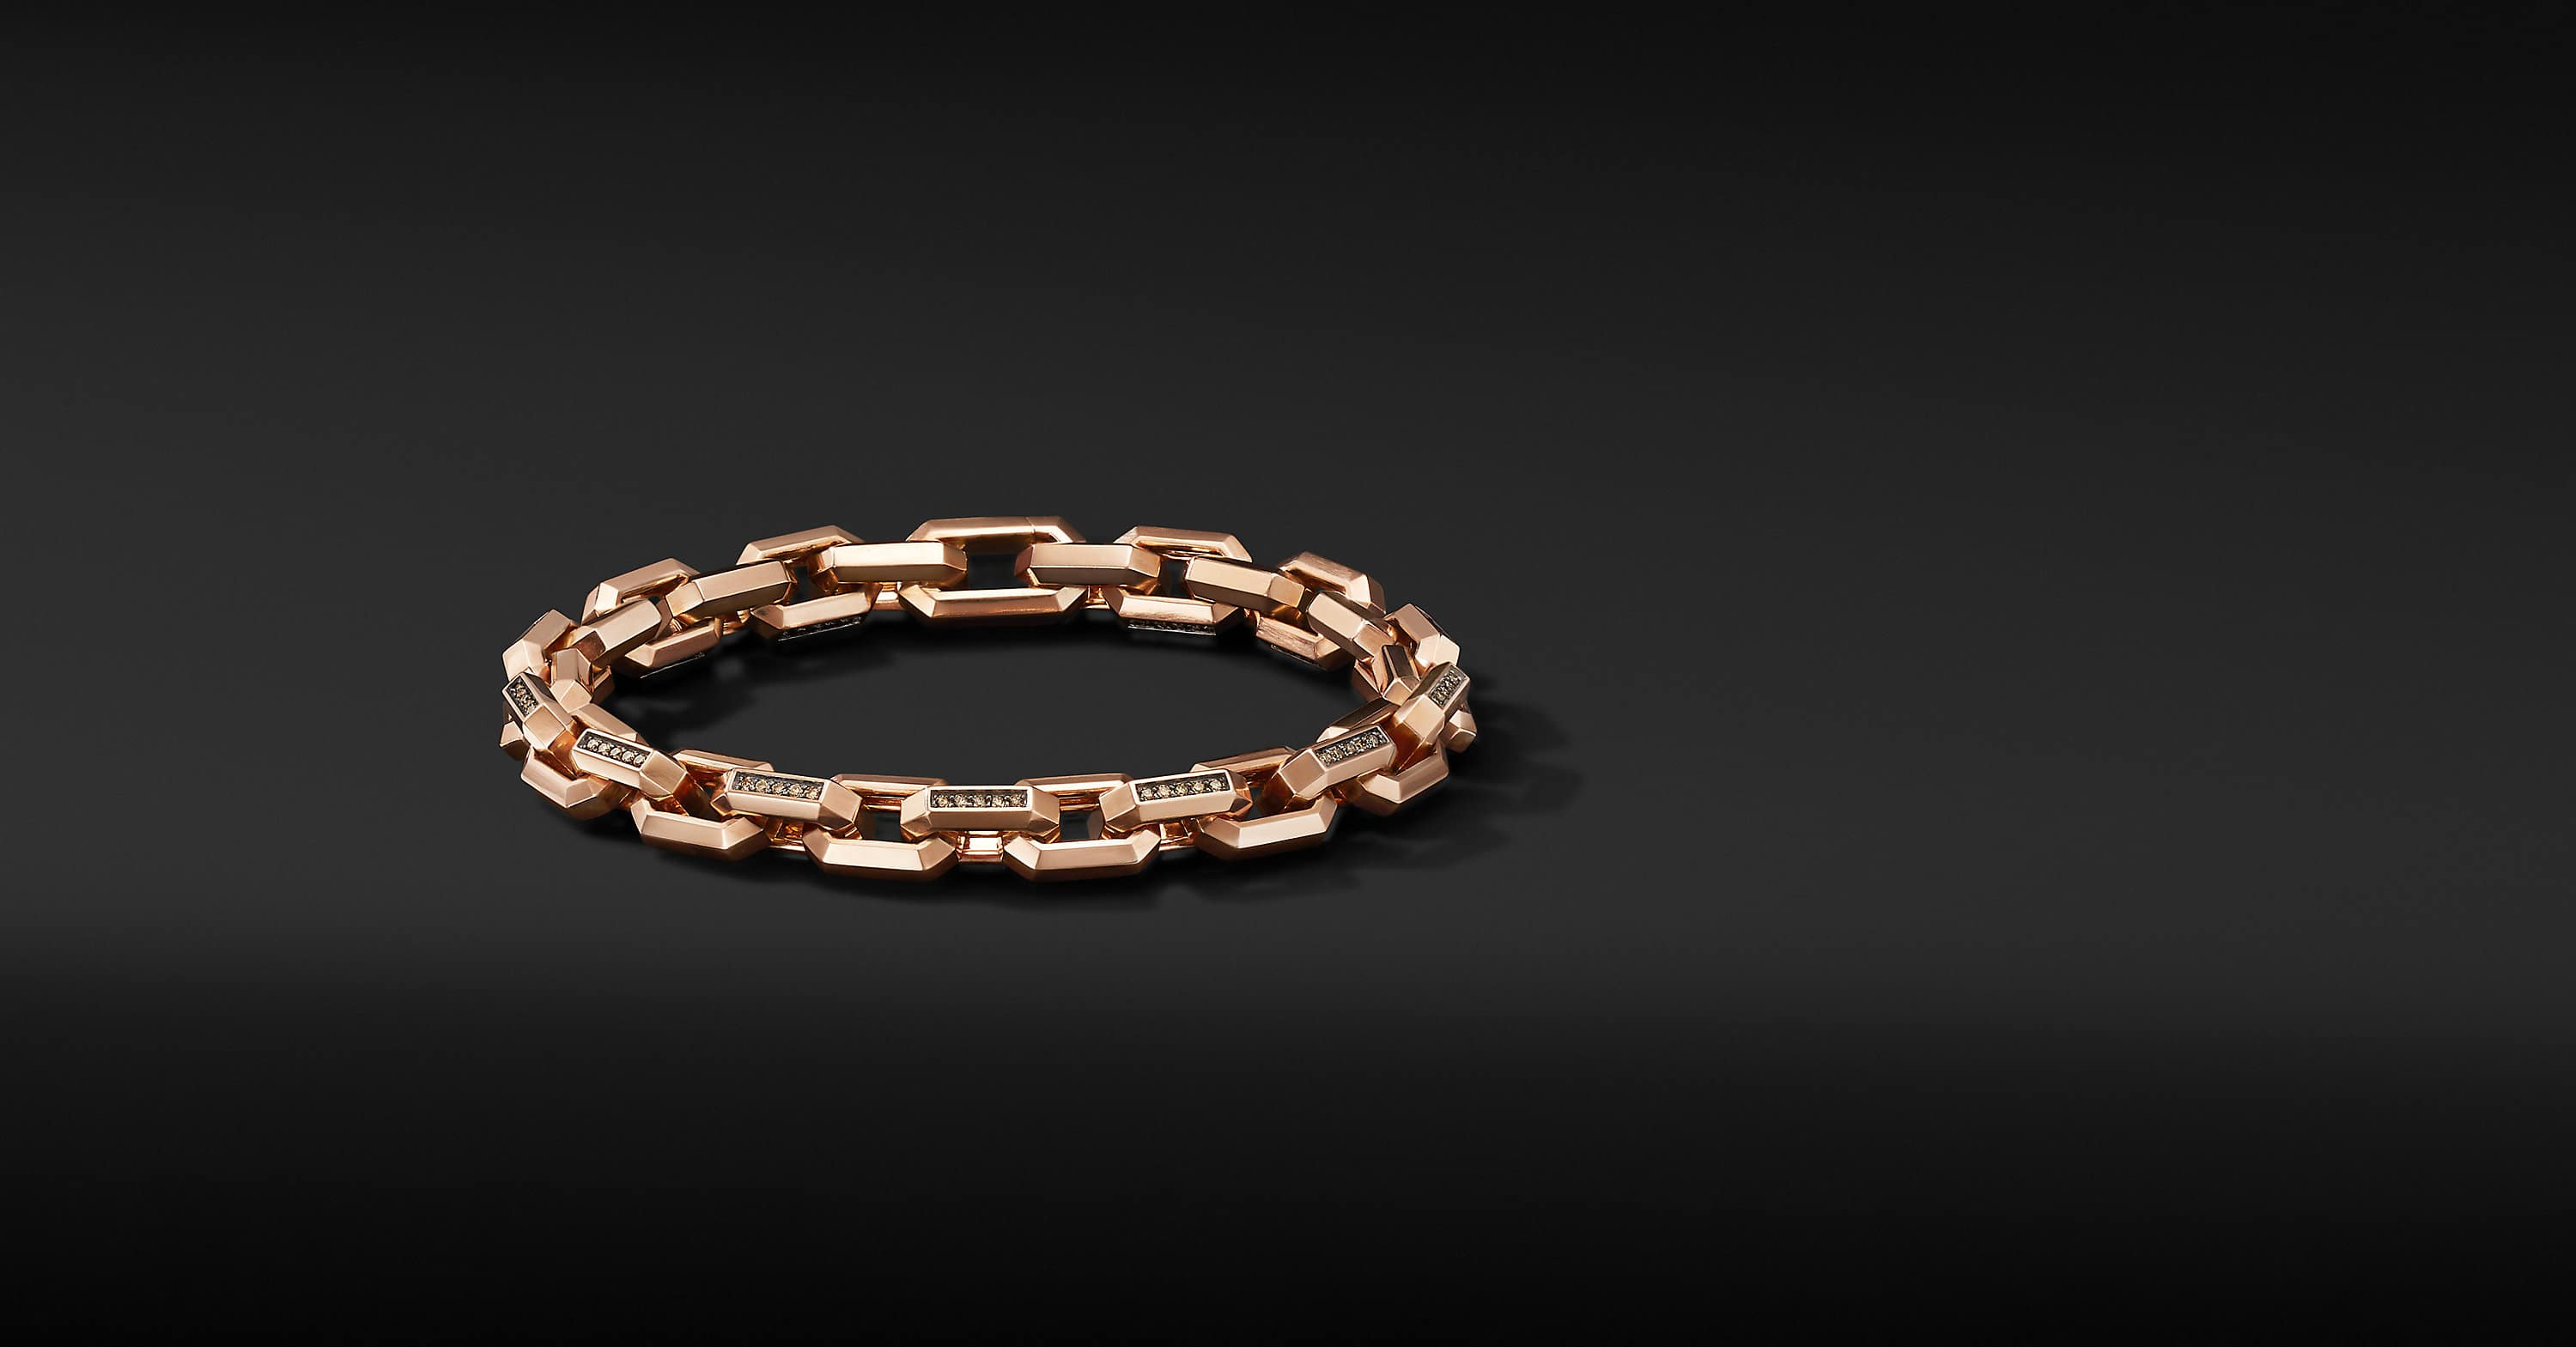 Heirloom Chain Link Bracelet in 18K Rose Gold, 7.5mm